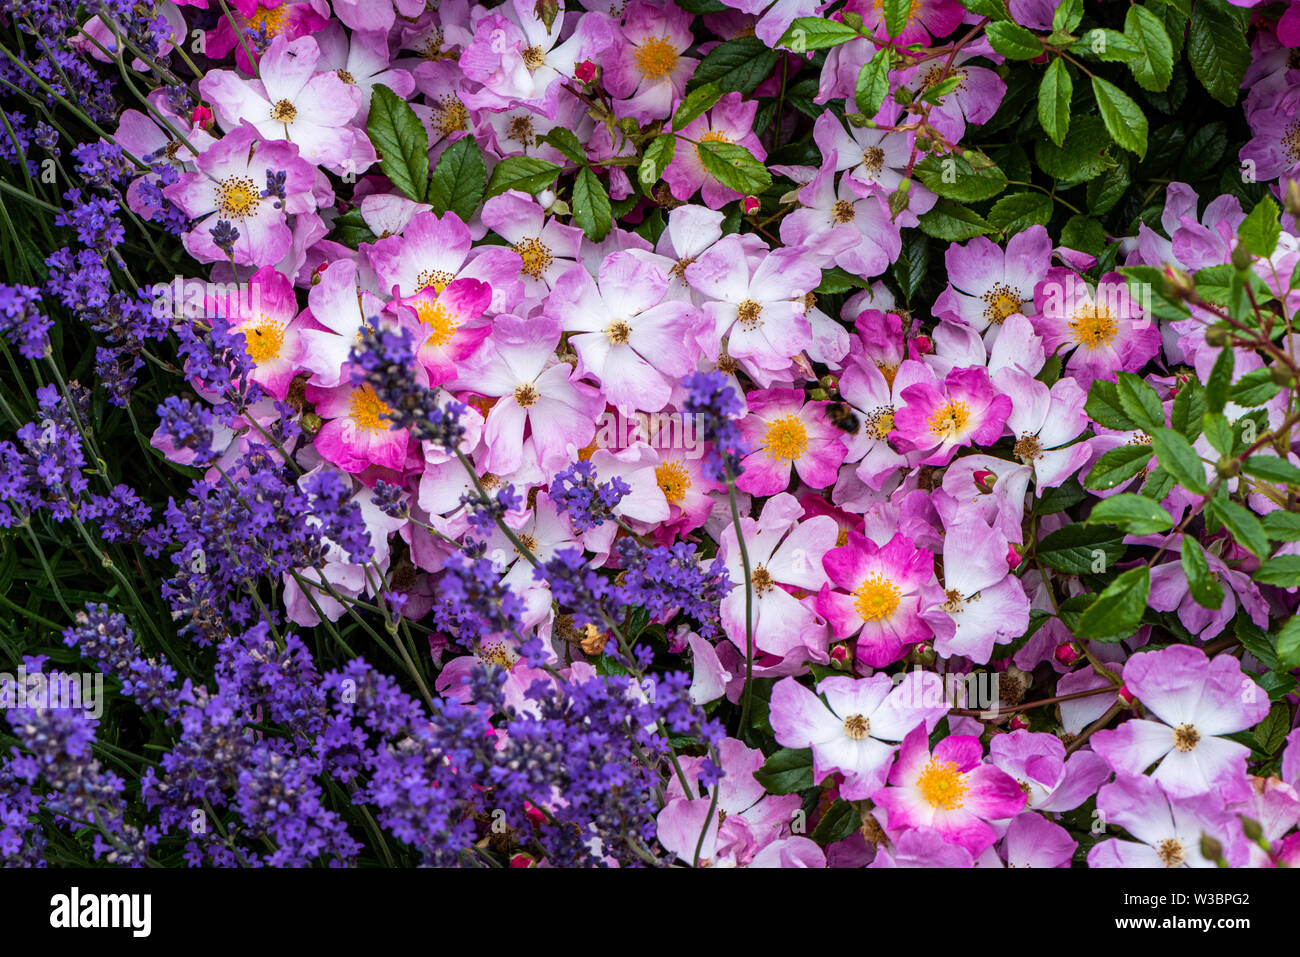 Lavender and roses in garden in Burbage, Wiltshire, UK - Stock Image